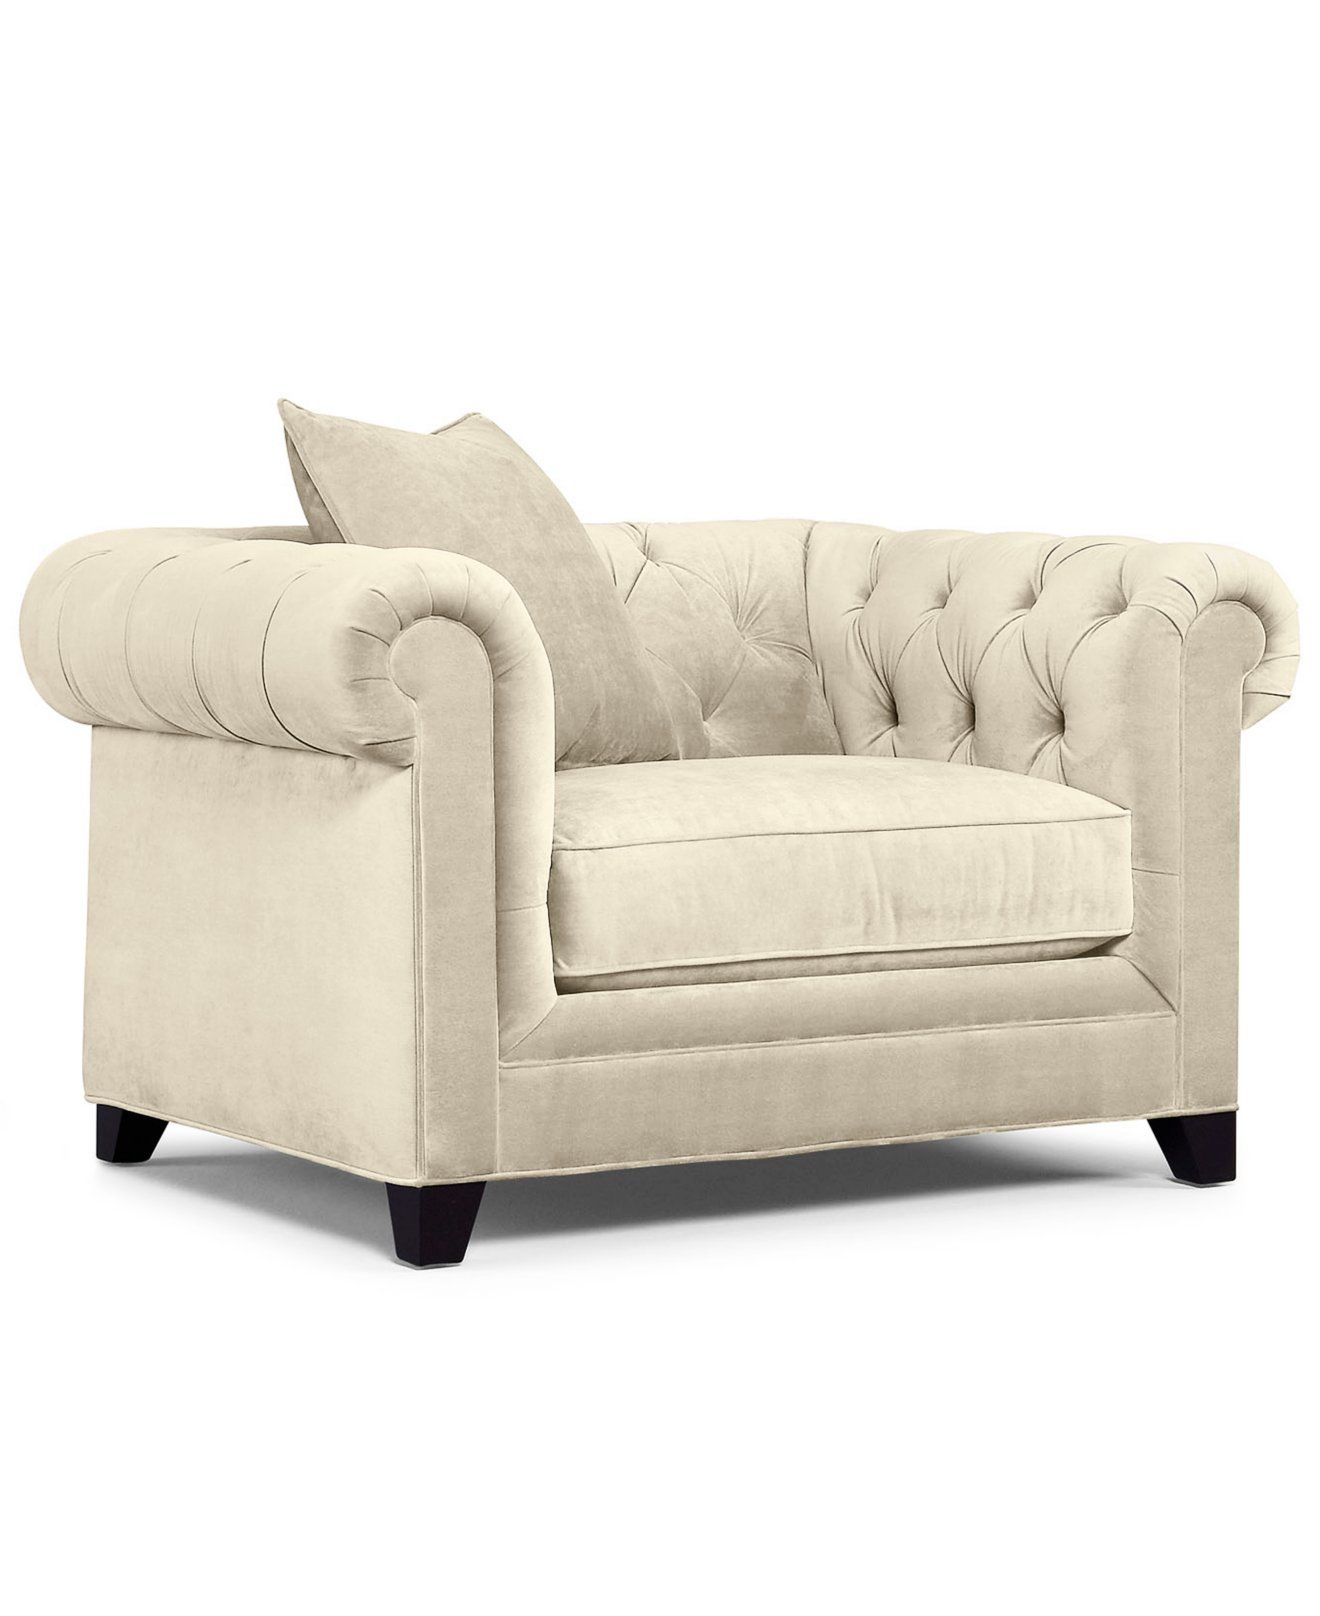 martha stewart collection saybridge living room chair | shops